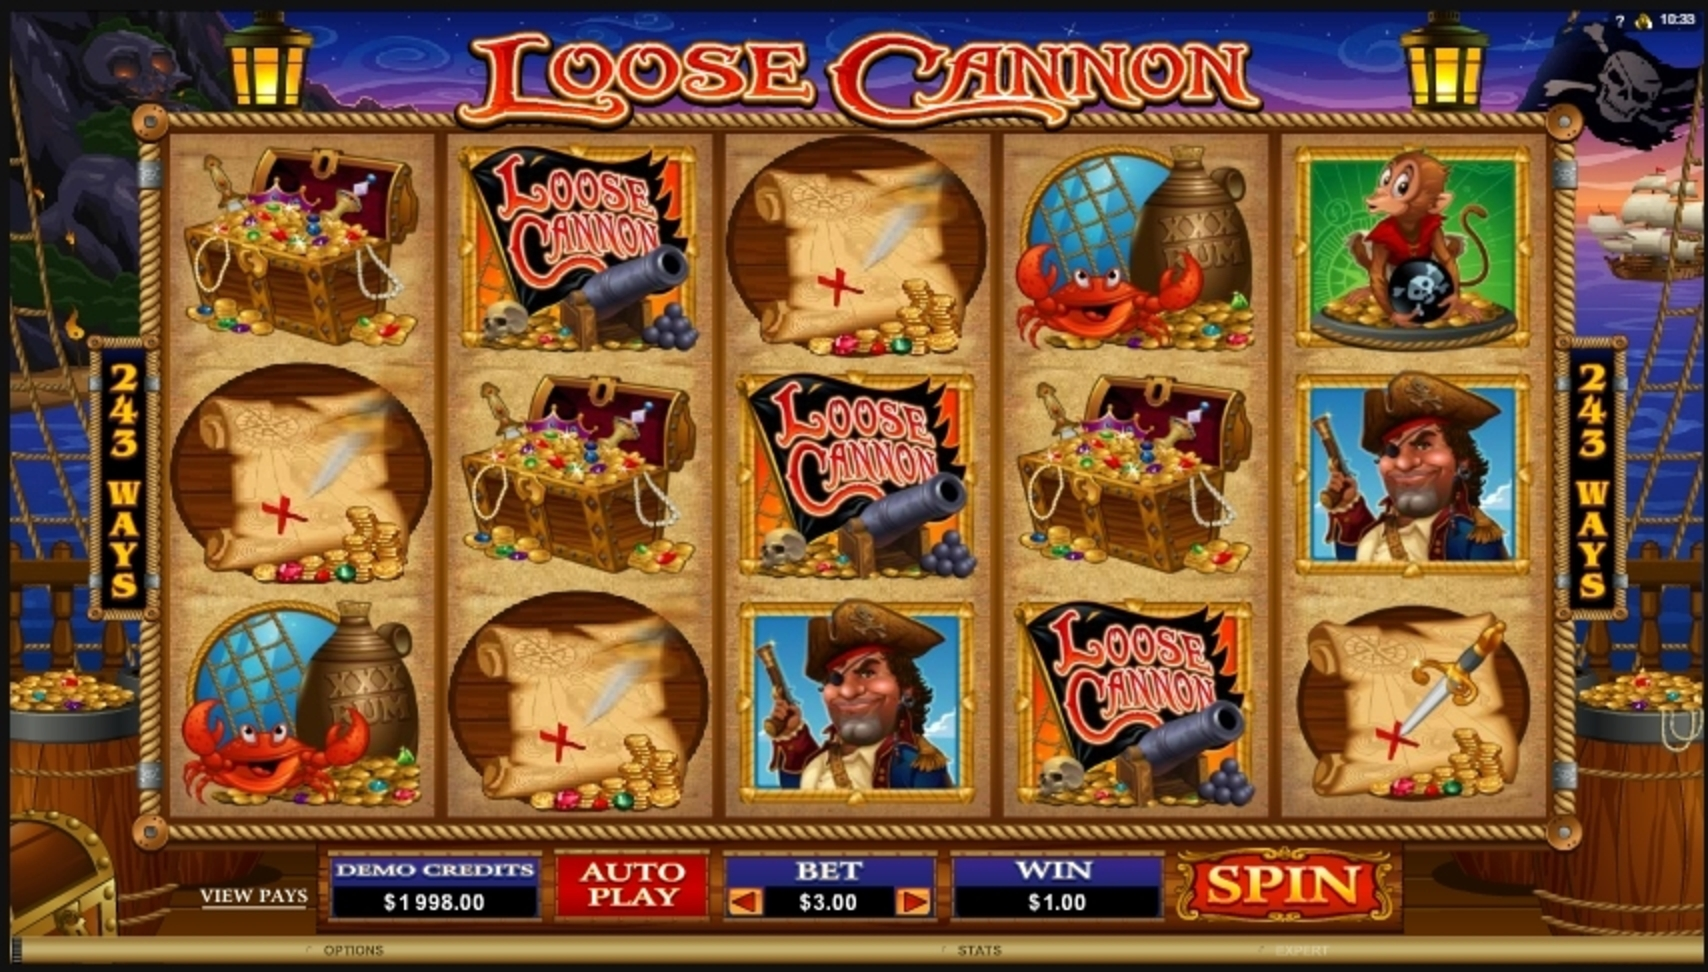 Win Money in Loose Cannon Free Slot Game by Microgaming